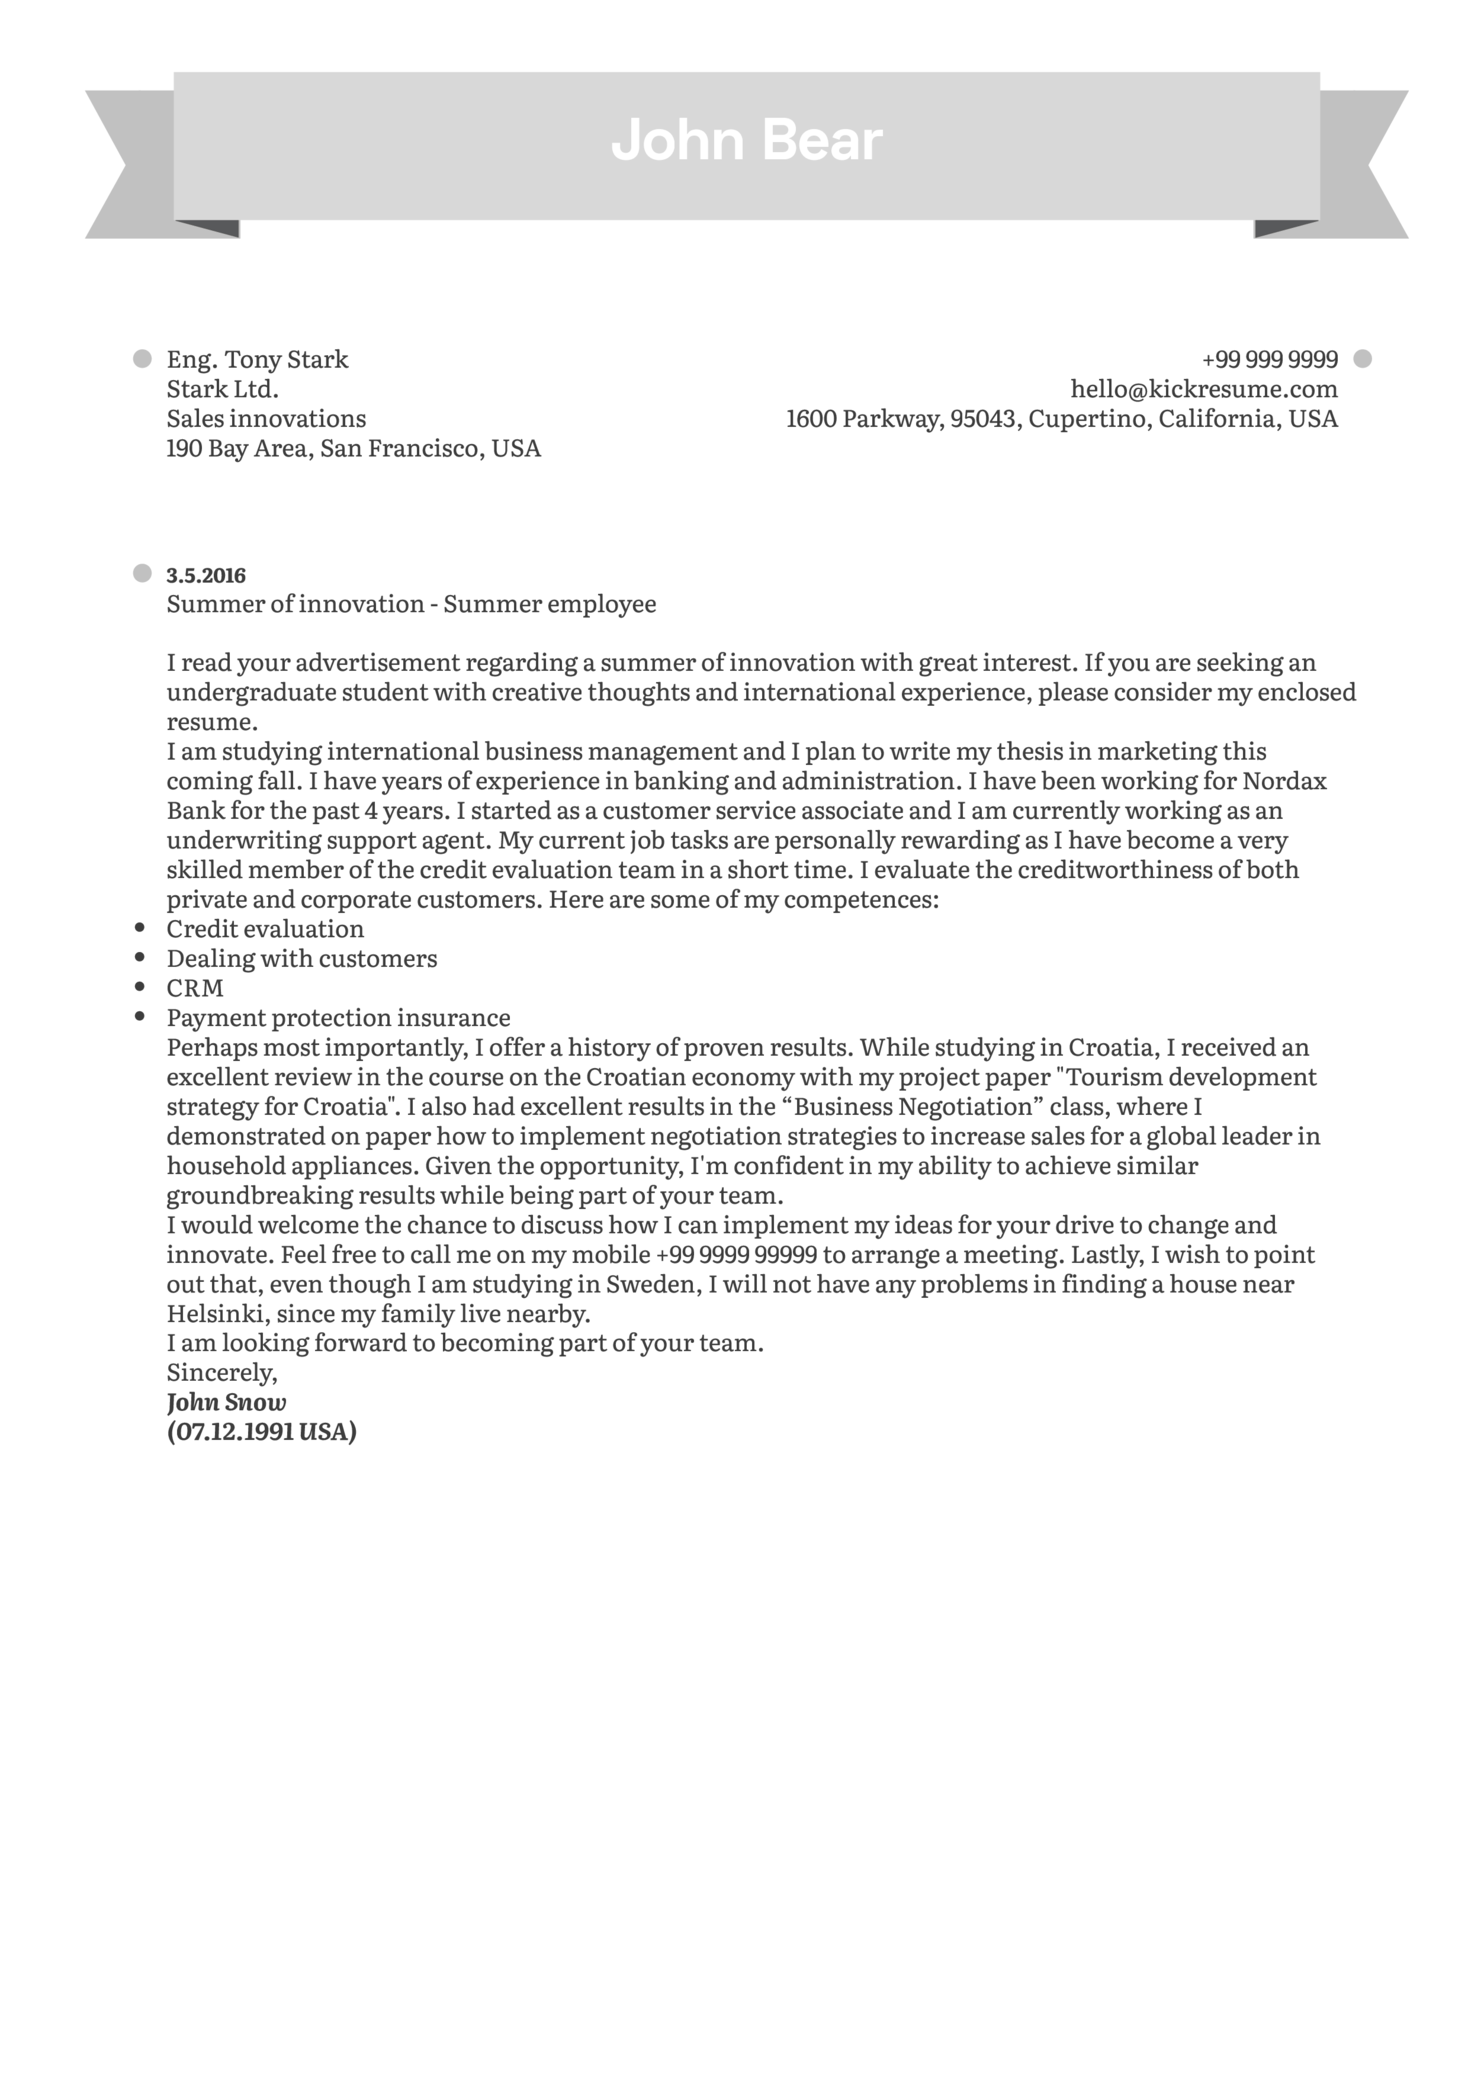 Student summer job cover letter sample